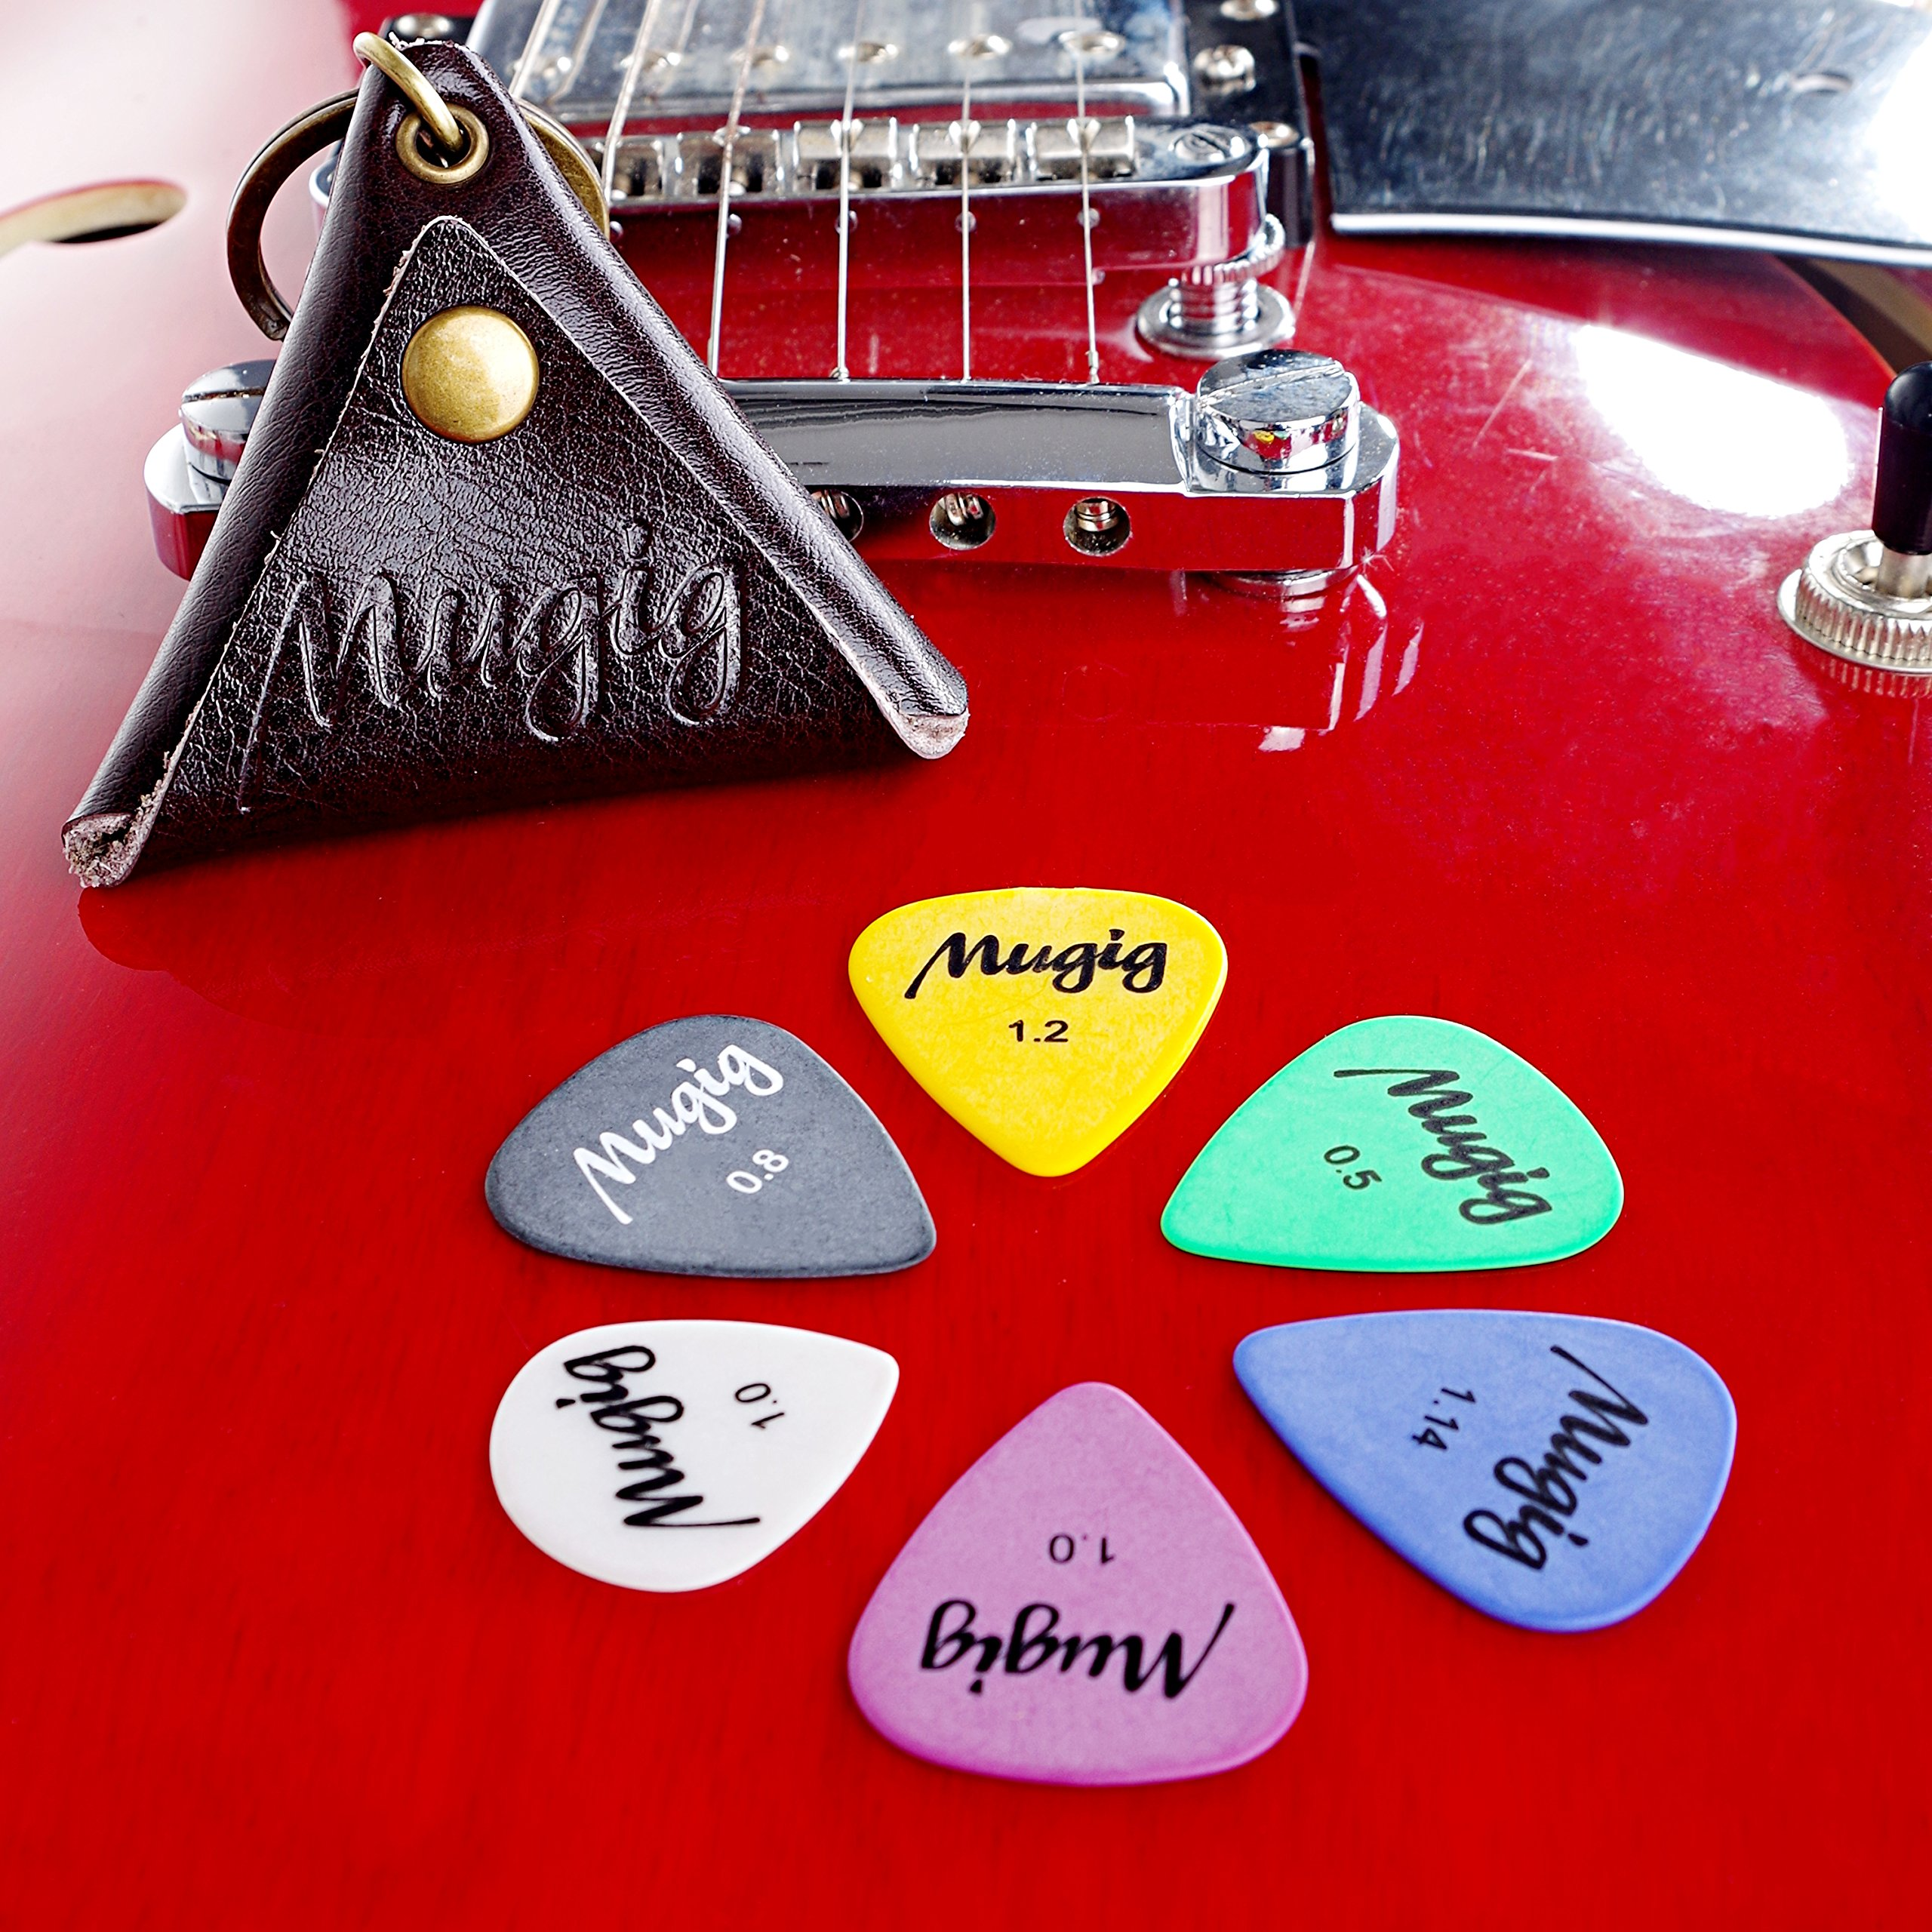 Mugig Guitar Picks Plectrums (Delrin) with Leather Pick Holder Case, Contain 12 Picks Thickness 0.5 / 0.8 / 1/ 1.14 / 1.2 mm